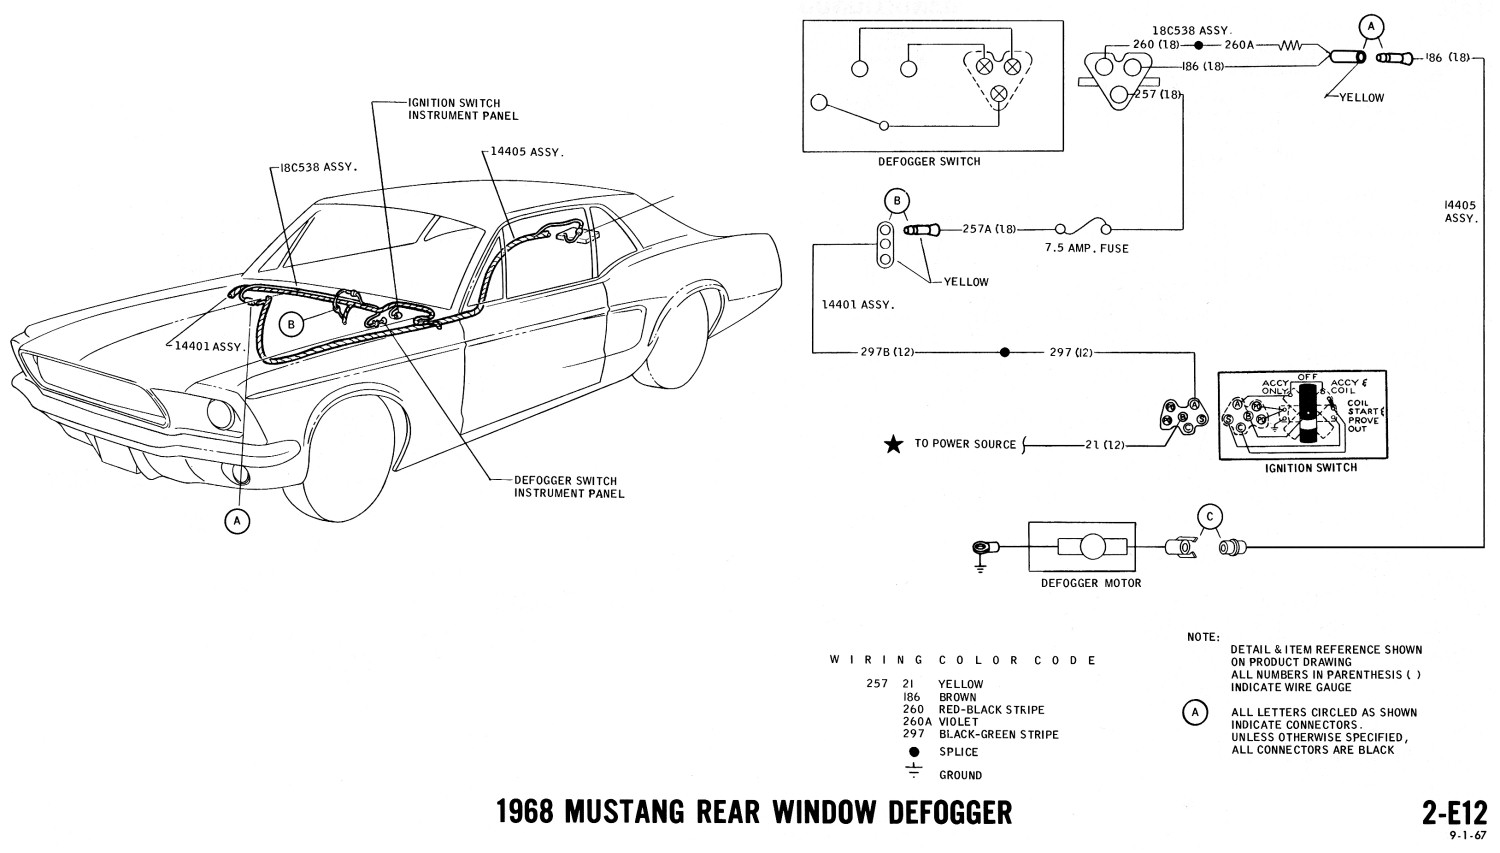 1968 mustang wiring diagrams and vacuum schematics ... 2012 ram backup light wiring diagram